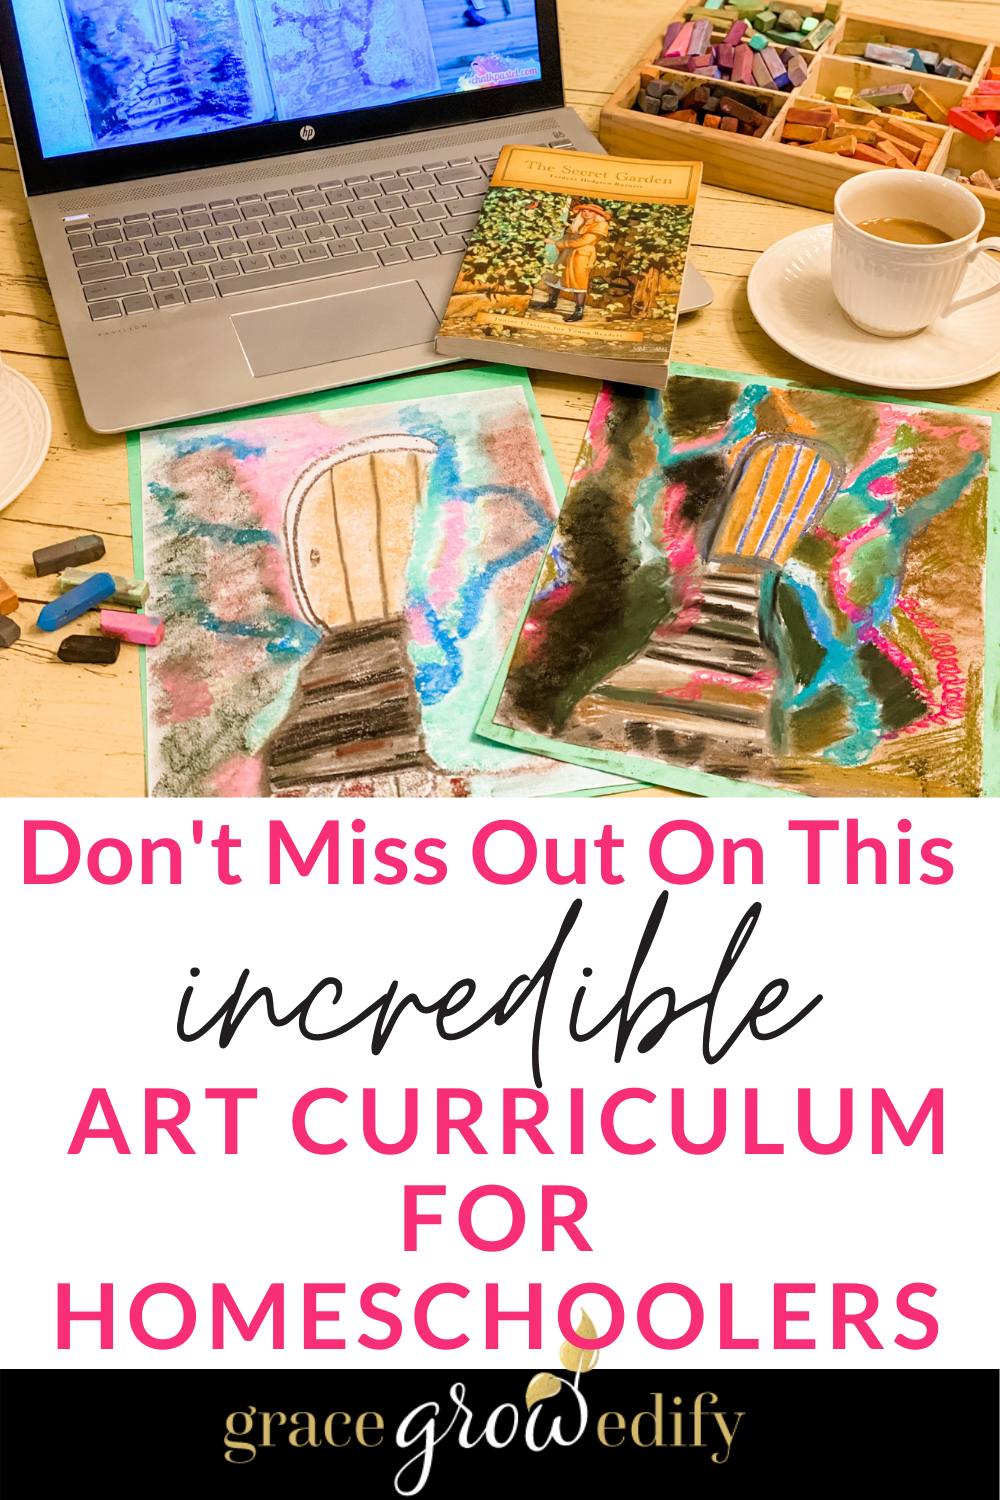 THIS is THE art curriculum that your homeschool is missing! You can learn and be creative at the same time and your kids will LOVE it! #homeschooling #homeschool #artcurriculum #artforkids #homeschooling #artclassesonline #homeschoolart